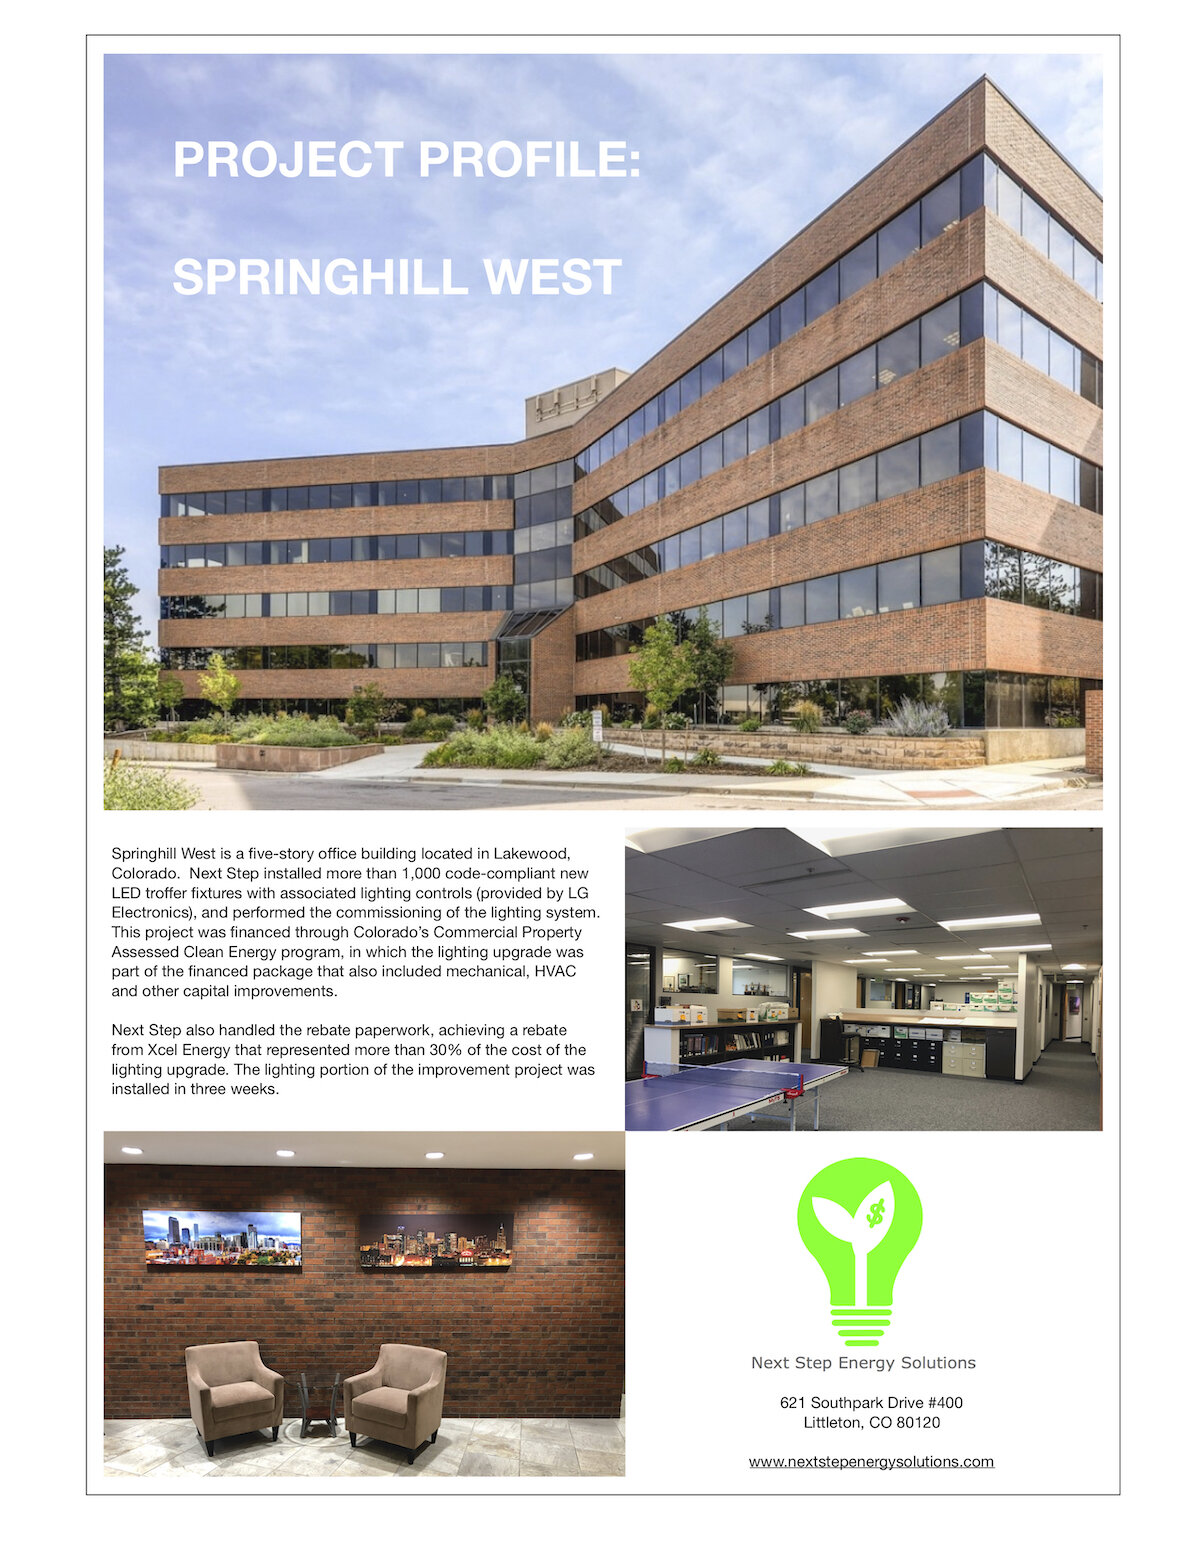 Project Profile Springhill West.jpg